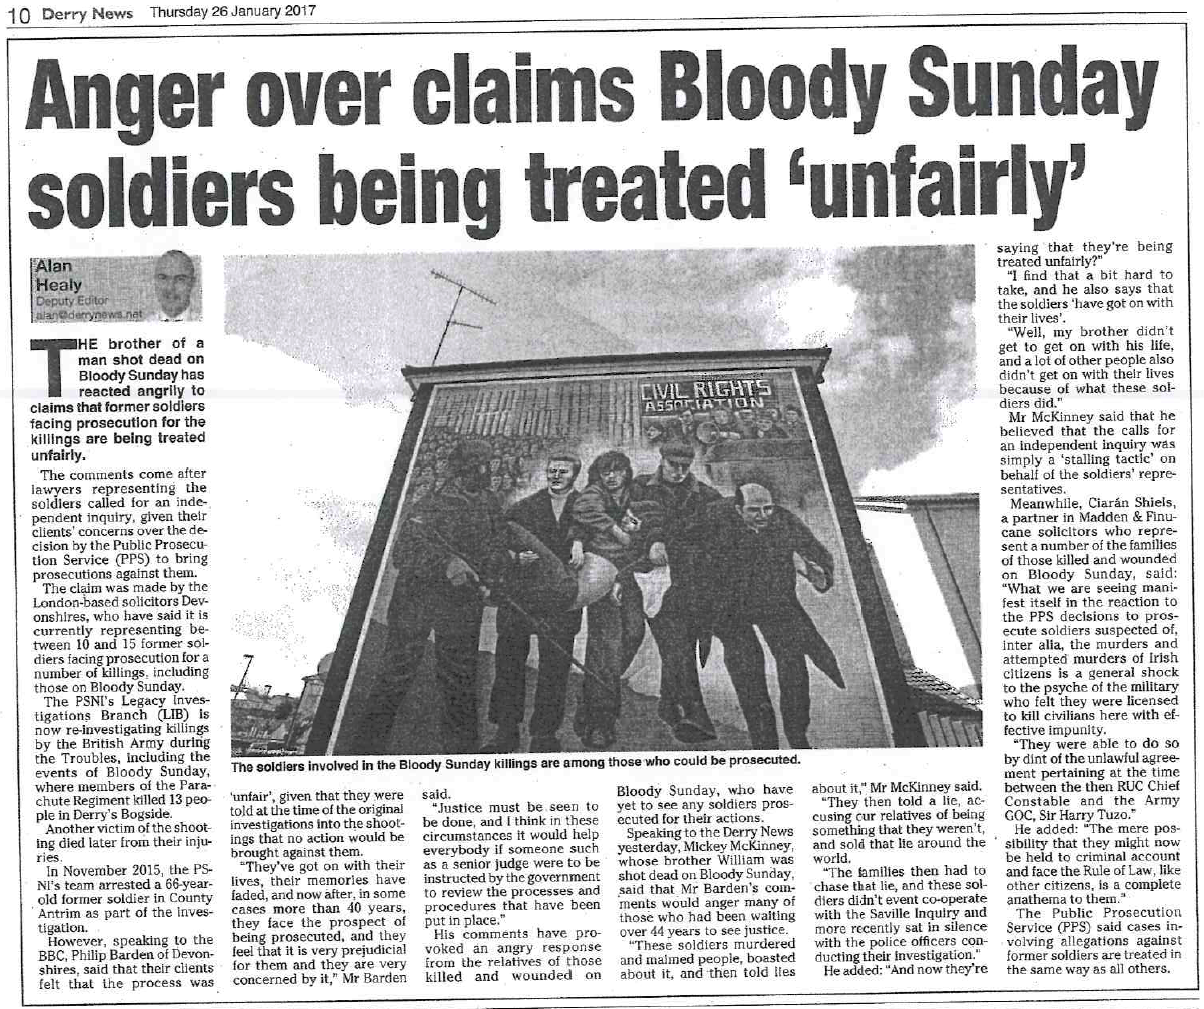 Anger over claims Bloody Sunday soldiers being treated 'unfairly'